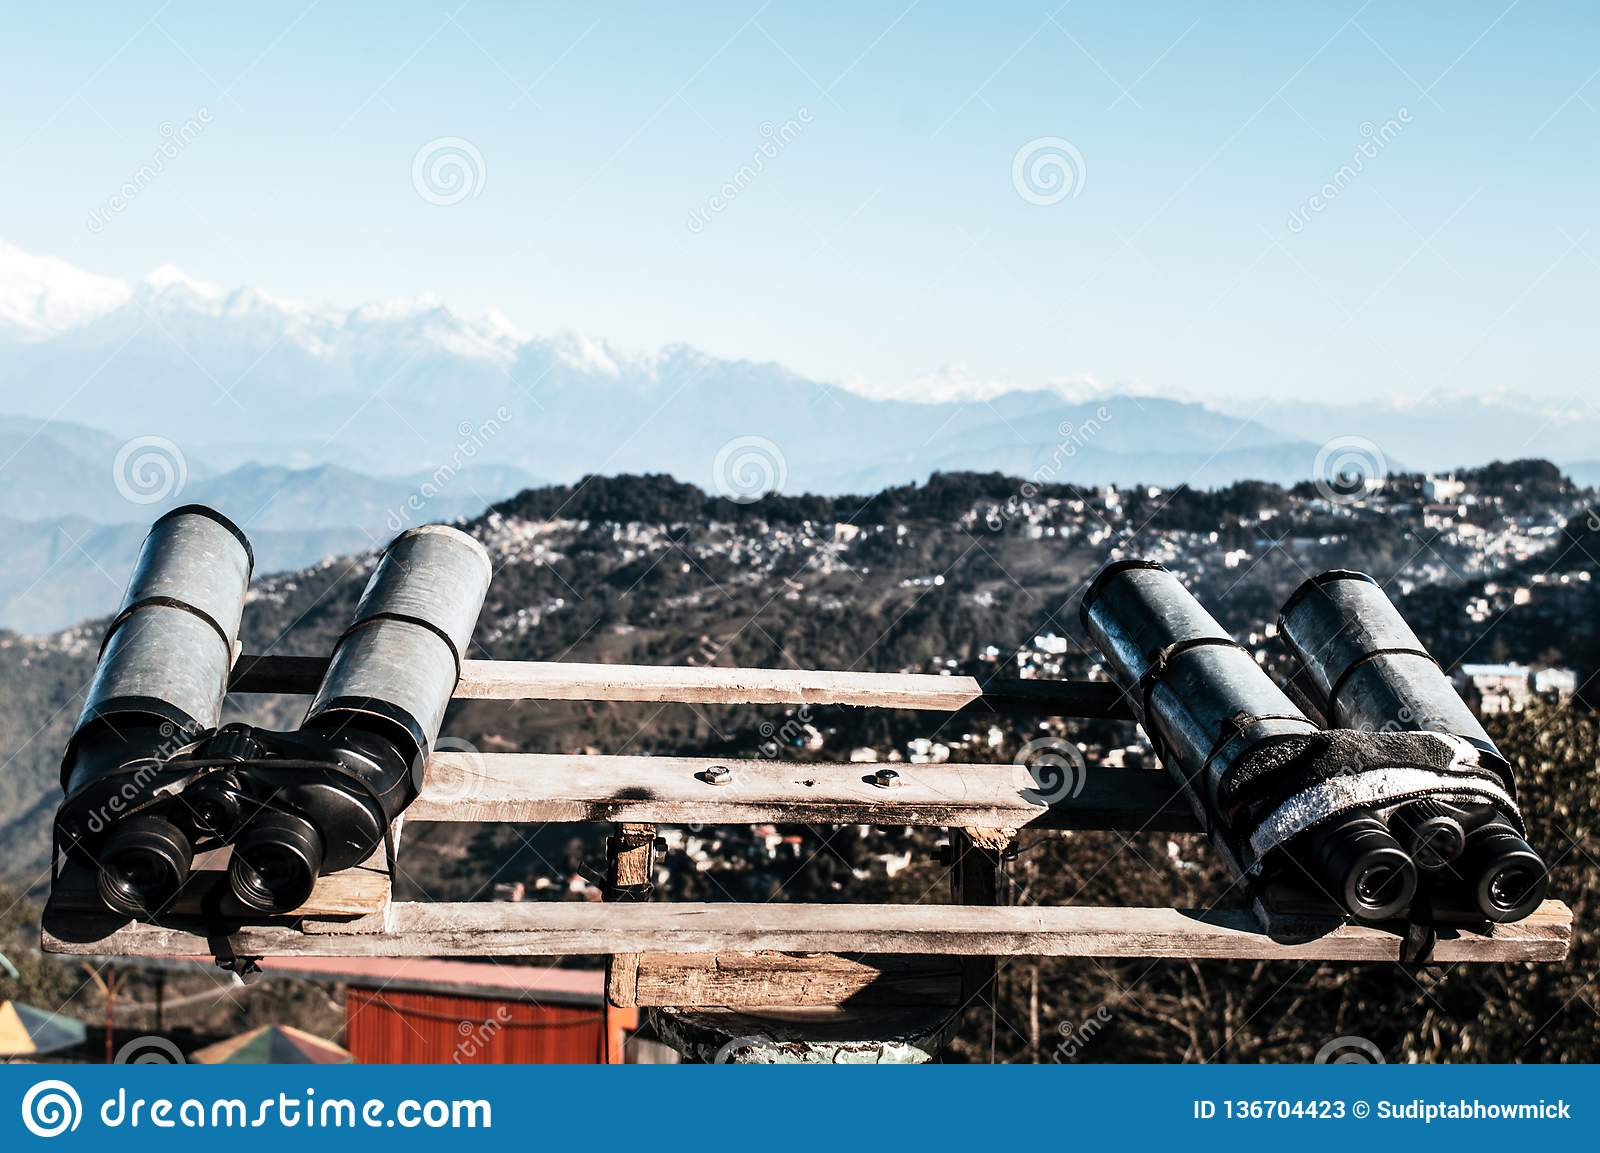 Telescopes, Binoculars, field glasses mounted for viewer to magnify binocular vision to see Kanchenjunga, Everest, Annapurna mou